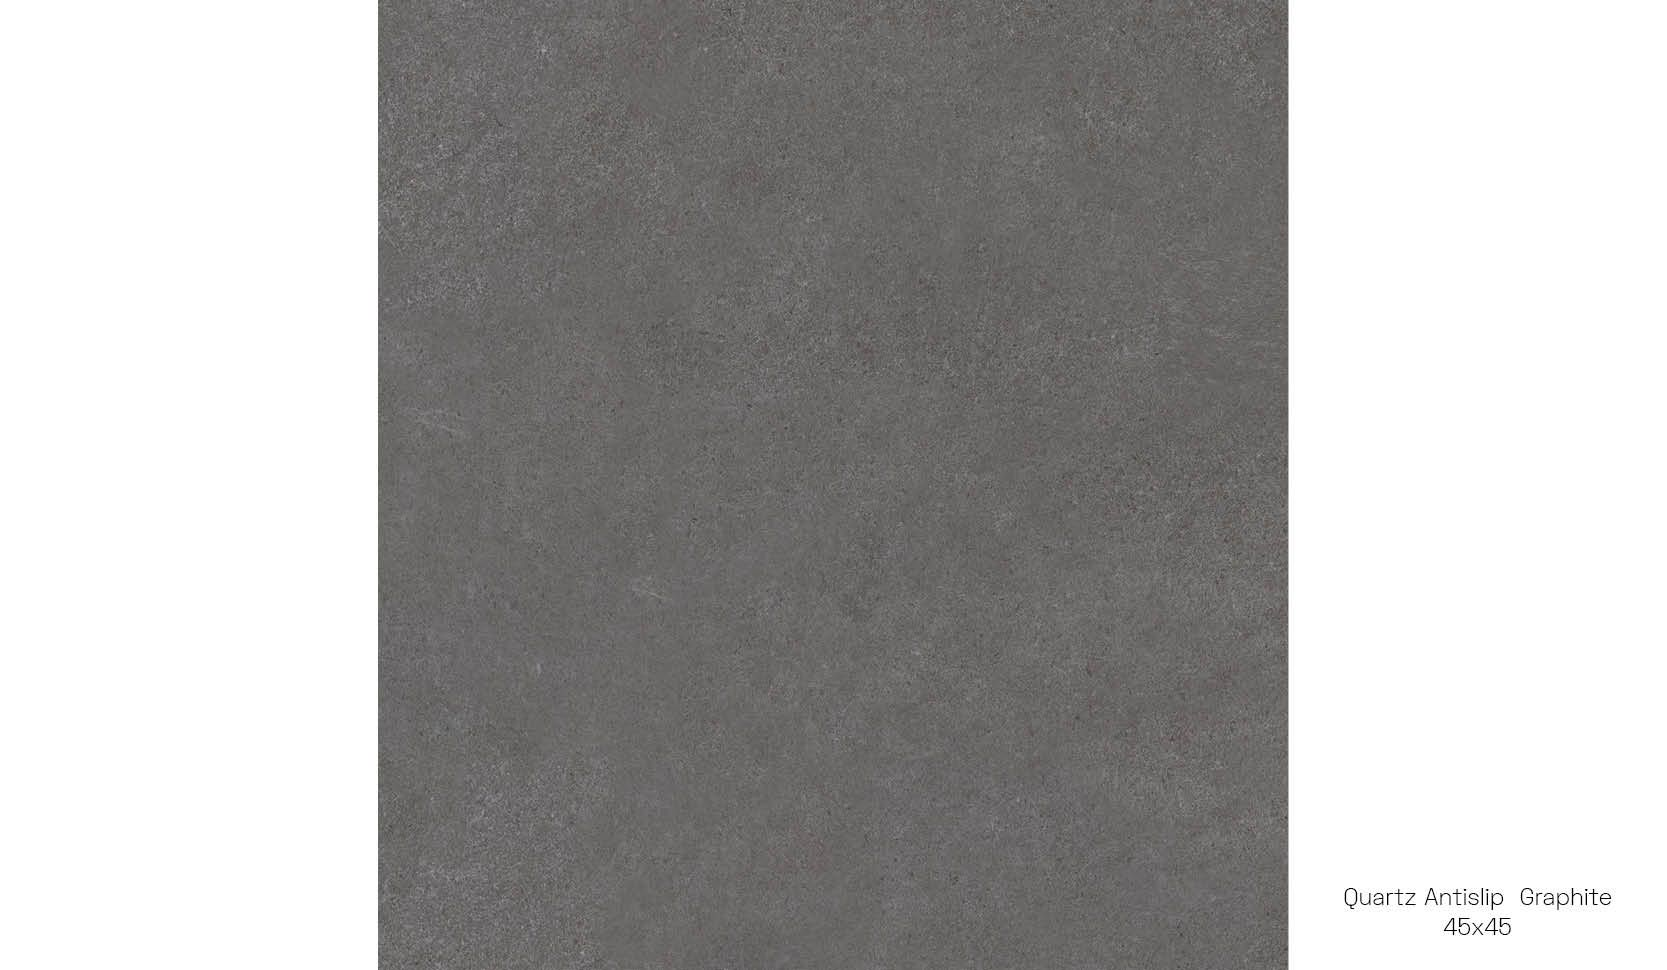 Quartz antislip graphite 45 x 45